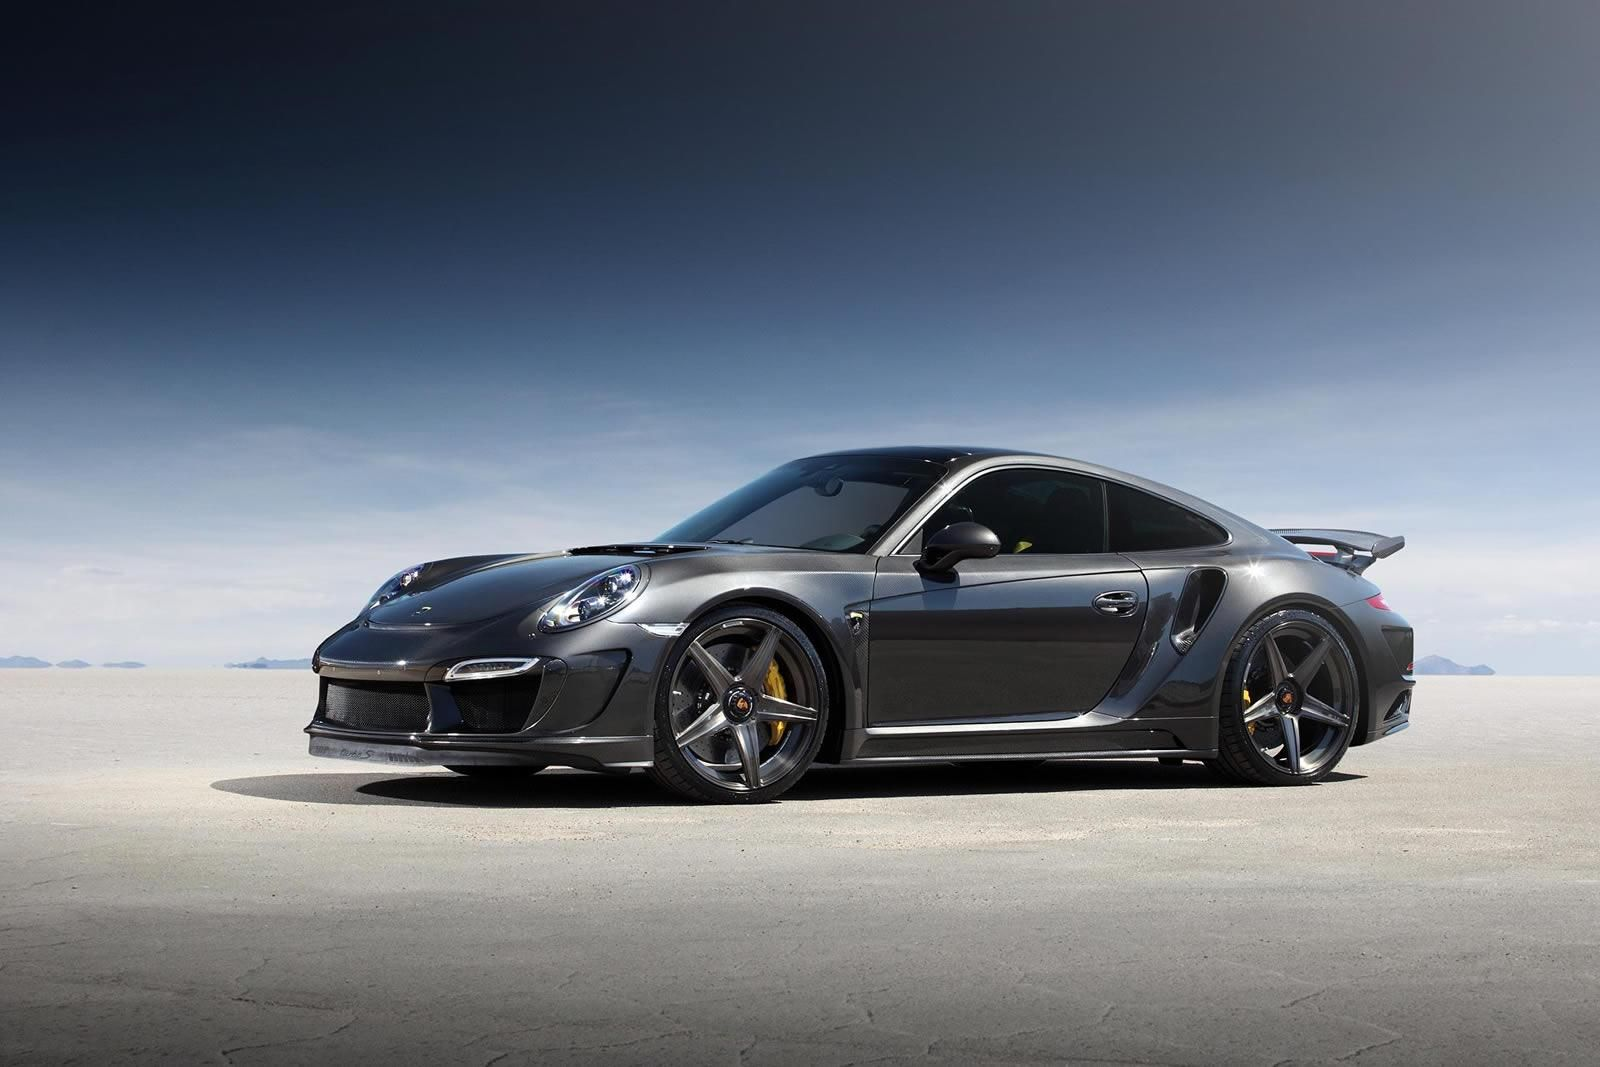 Topcar Asking 290 000 For A Porsche 991 Gtr Carbon Edition